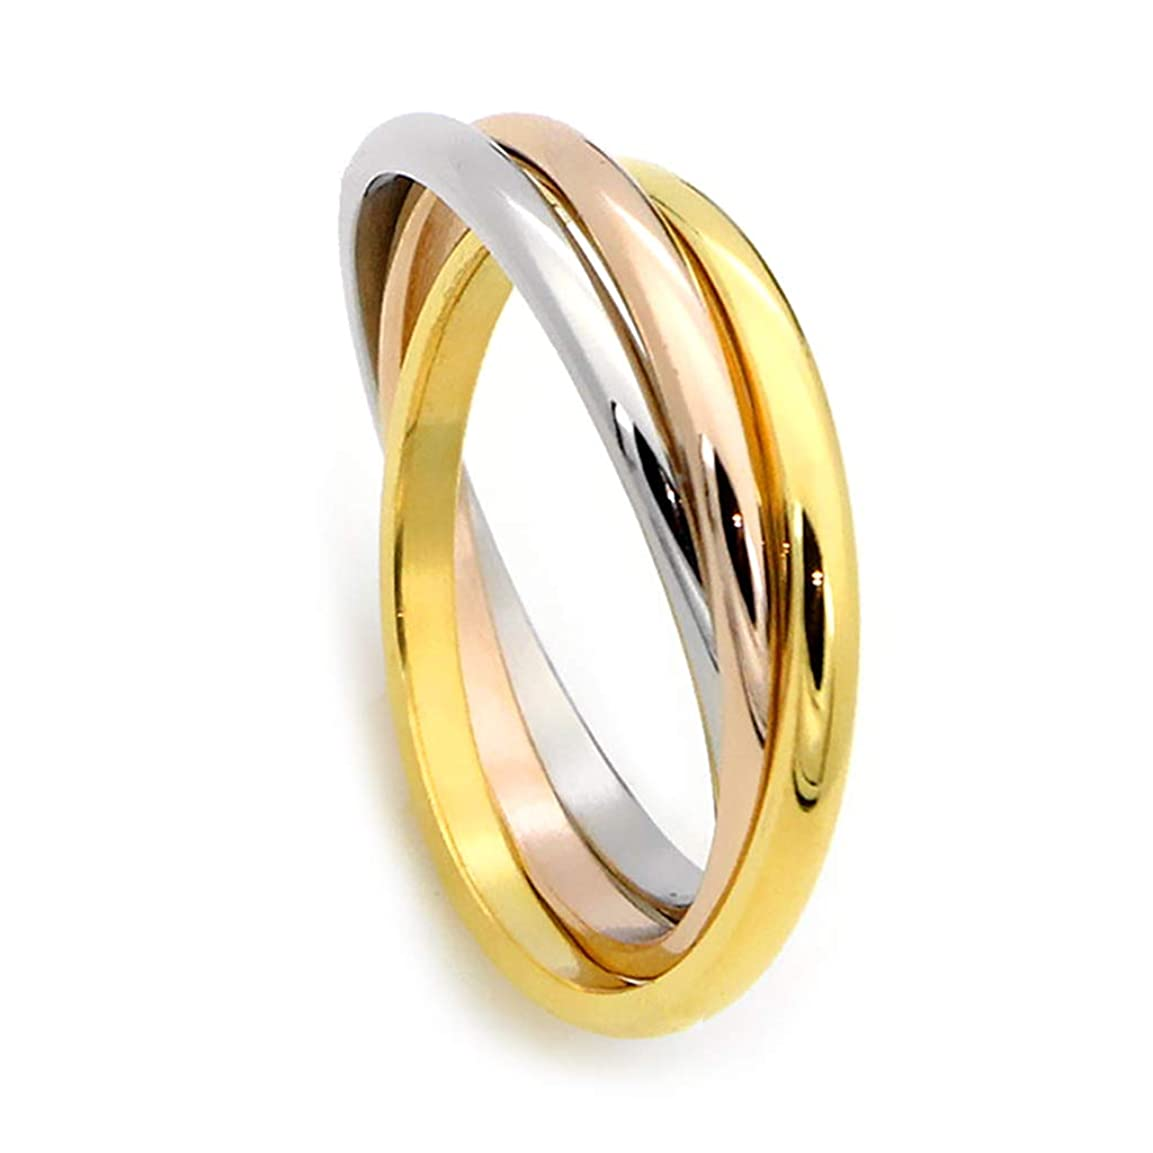 私たちに変わるDaeum Tricolor Classic Ring Titanium Steel Trend Fashion Mainstream Girls Ring